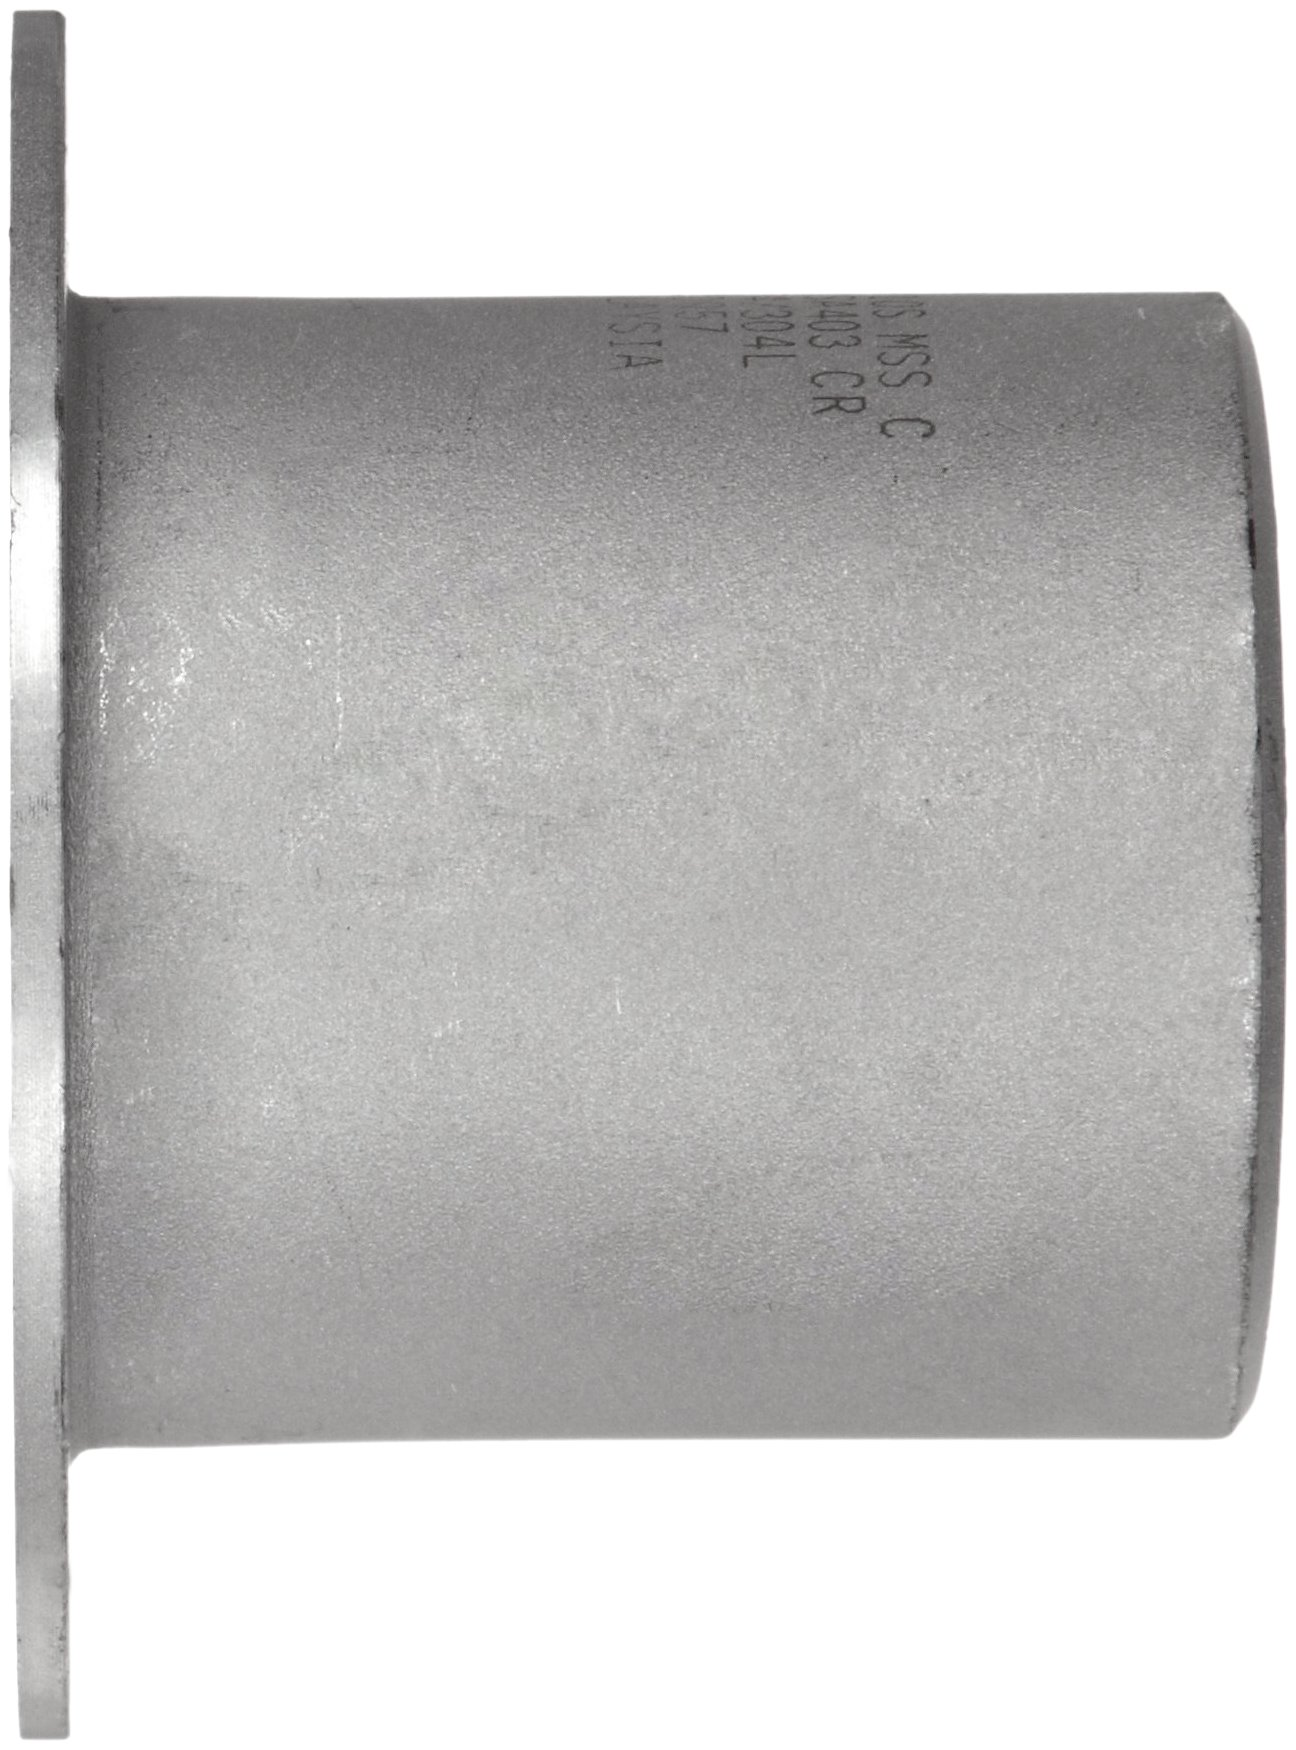 Stainless Steel 304/304L Pipe Fitting, Type C MSS Stub End, Butt-Weld, Schedule 10, 12'' Pipe Size by Merit Brass (Image #2)